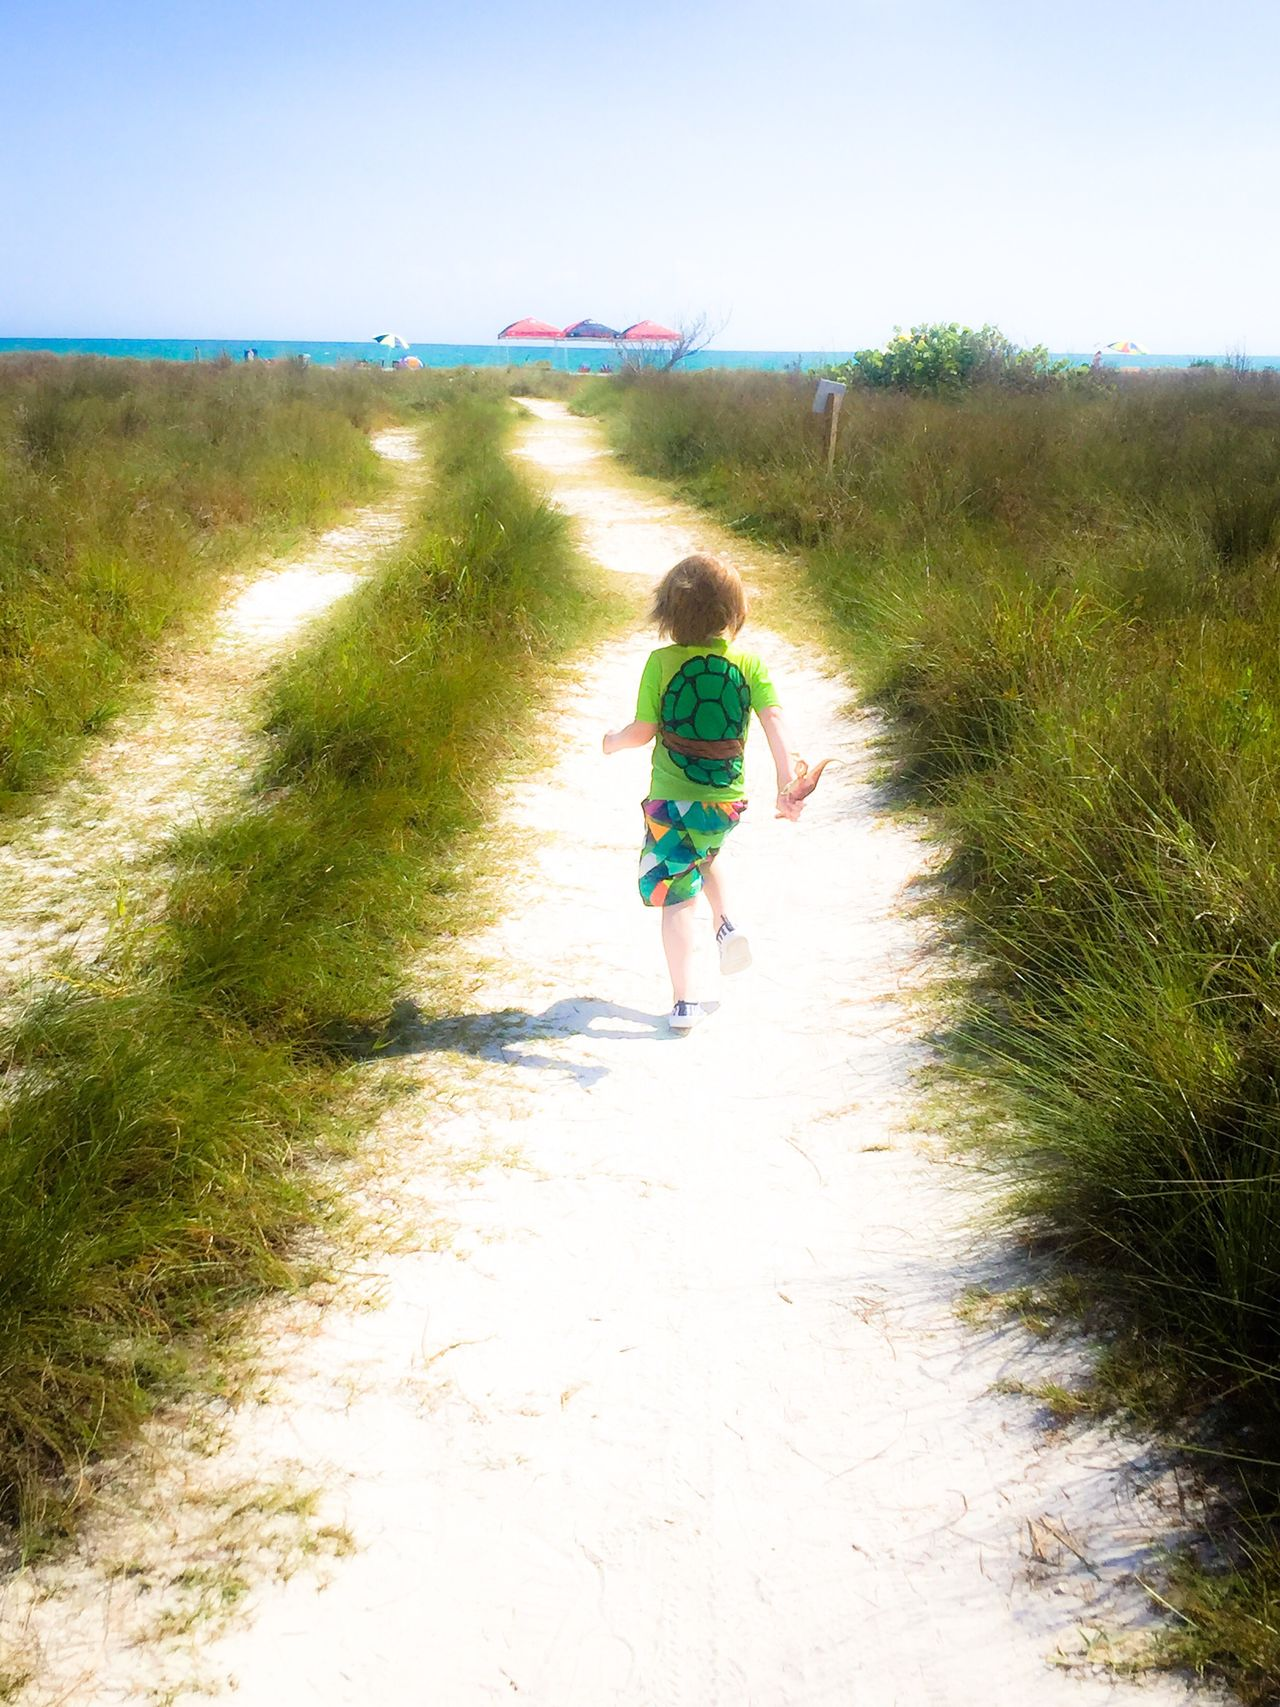 He was so excited to see the ocean for the first time he lost his hat along the way. He couldn't leave his dinosaur behind. 😄 I just love seeing all the firsts with my grandsons. I'm very thankful. ❤️🙏🏼 The Way Forward Portrait Of A Toddler Childhood Full Length Sand Footpath Grass Day Nature Nature Is My Best Friend Landscape Running Outdoors Plant Sky Blue Green Grandson Tranquility Tranquil Scene Tadaa Community Diminishing Perspective Beauty In Nature Nature Photography Ocean